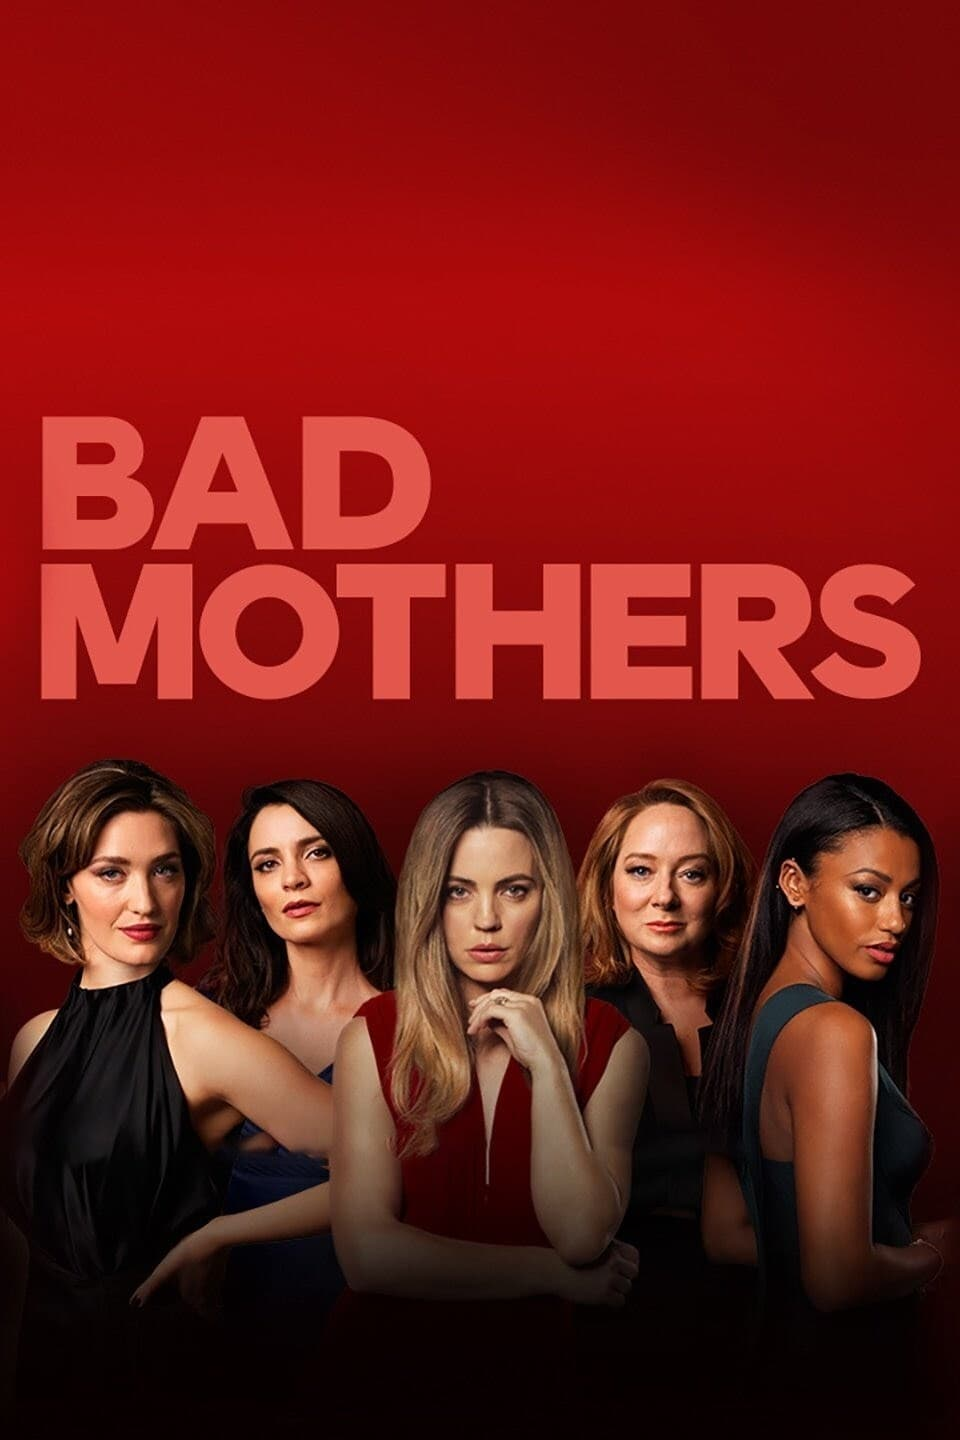 Bad Mothers TV Shows About Female Friendship